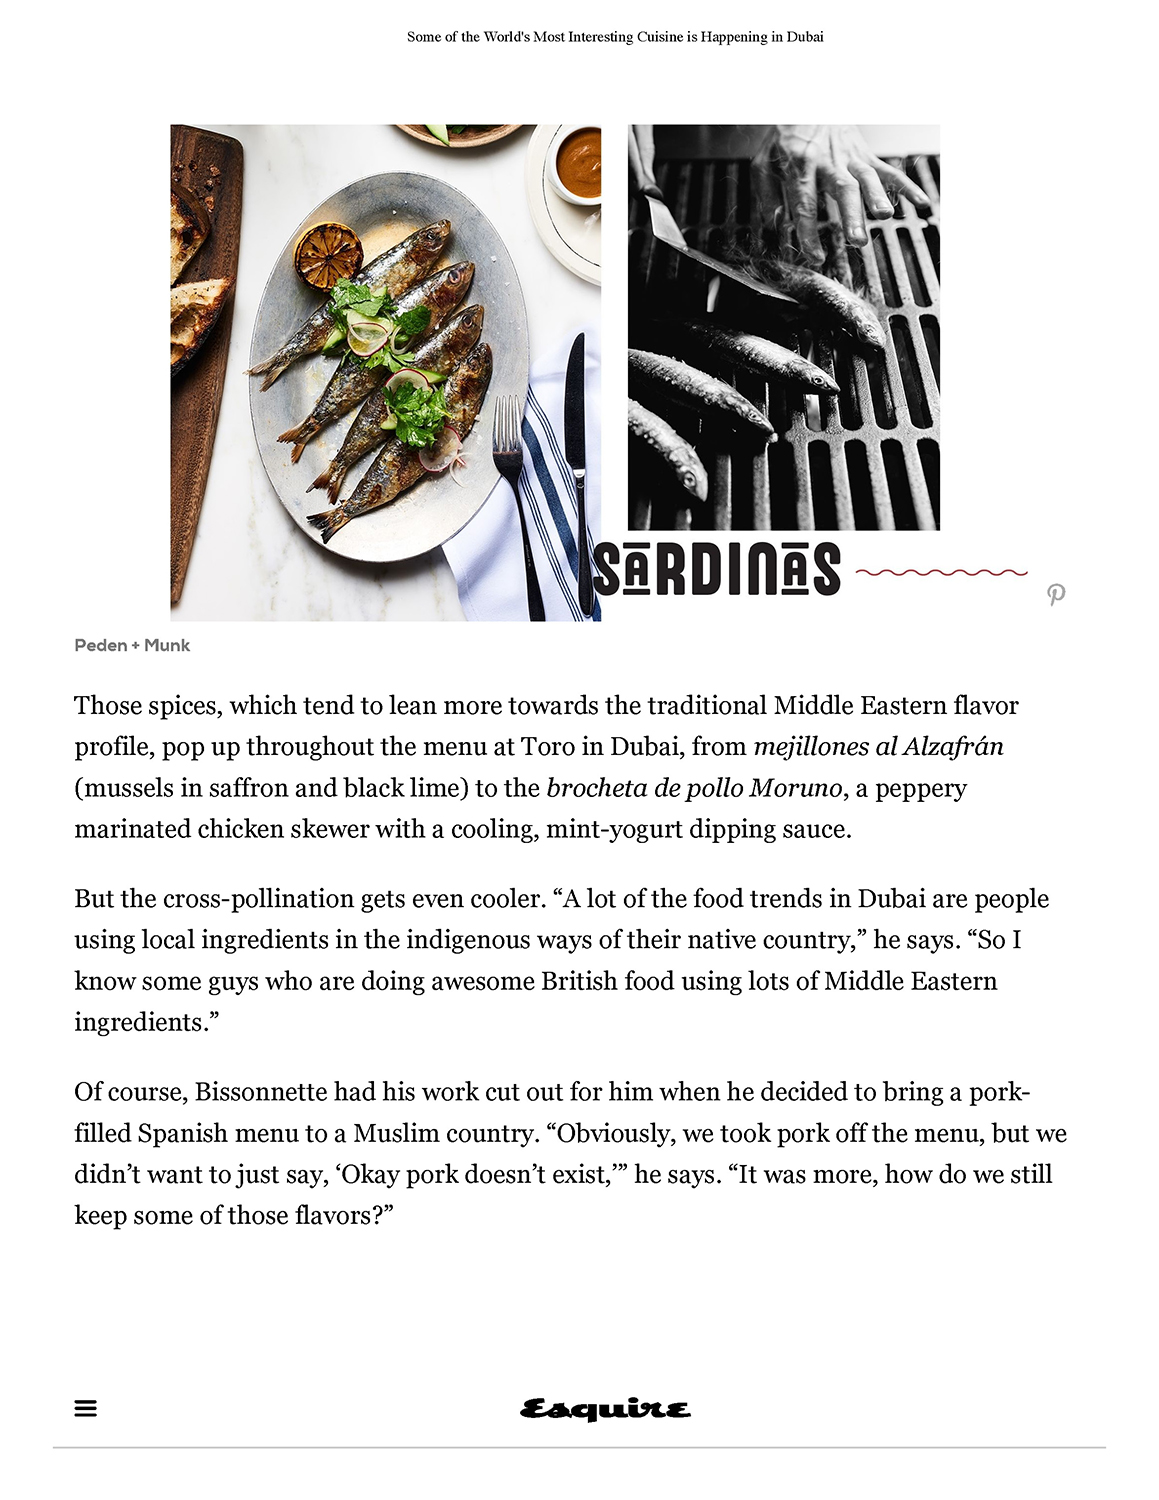 Some of the World's Most Interesting Cuisine is Happening in Dubai_Page_2.jpg